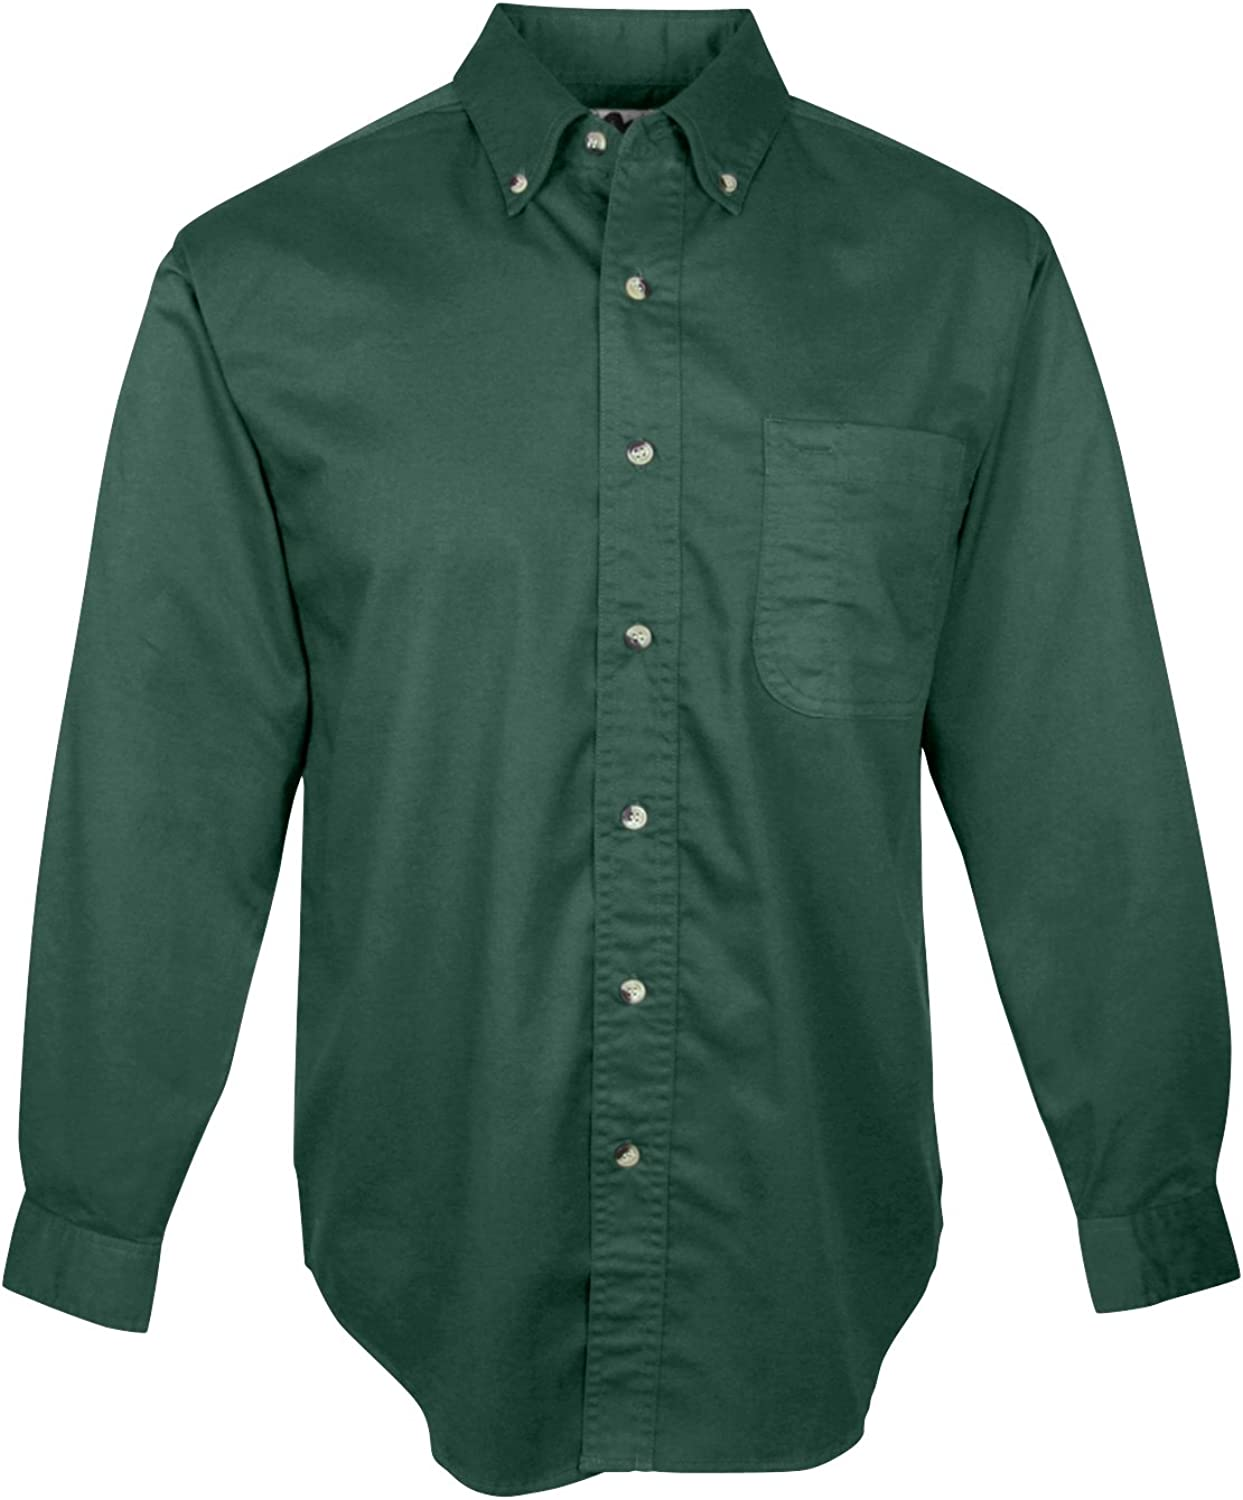 Tri-Mountain 770 Mens 60/40 Stain Resistant Long Sleeve Twill Shirt